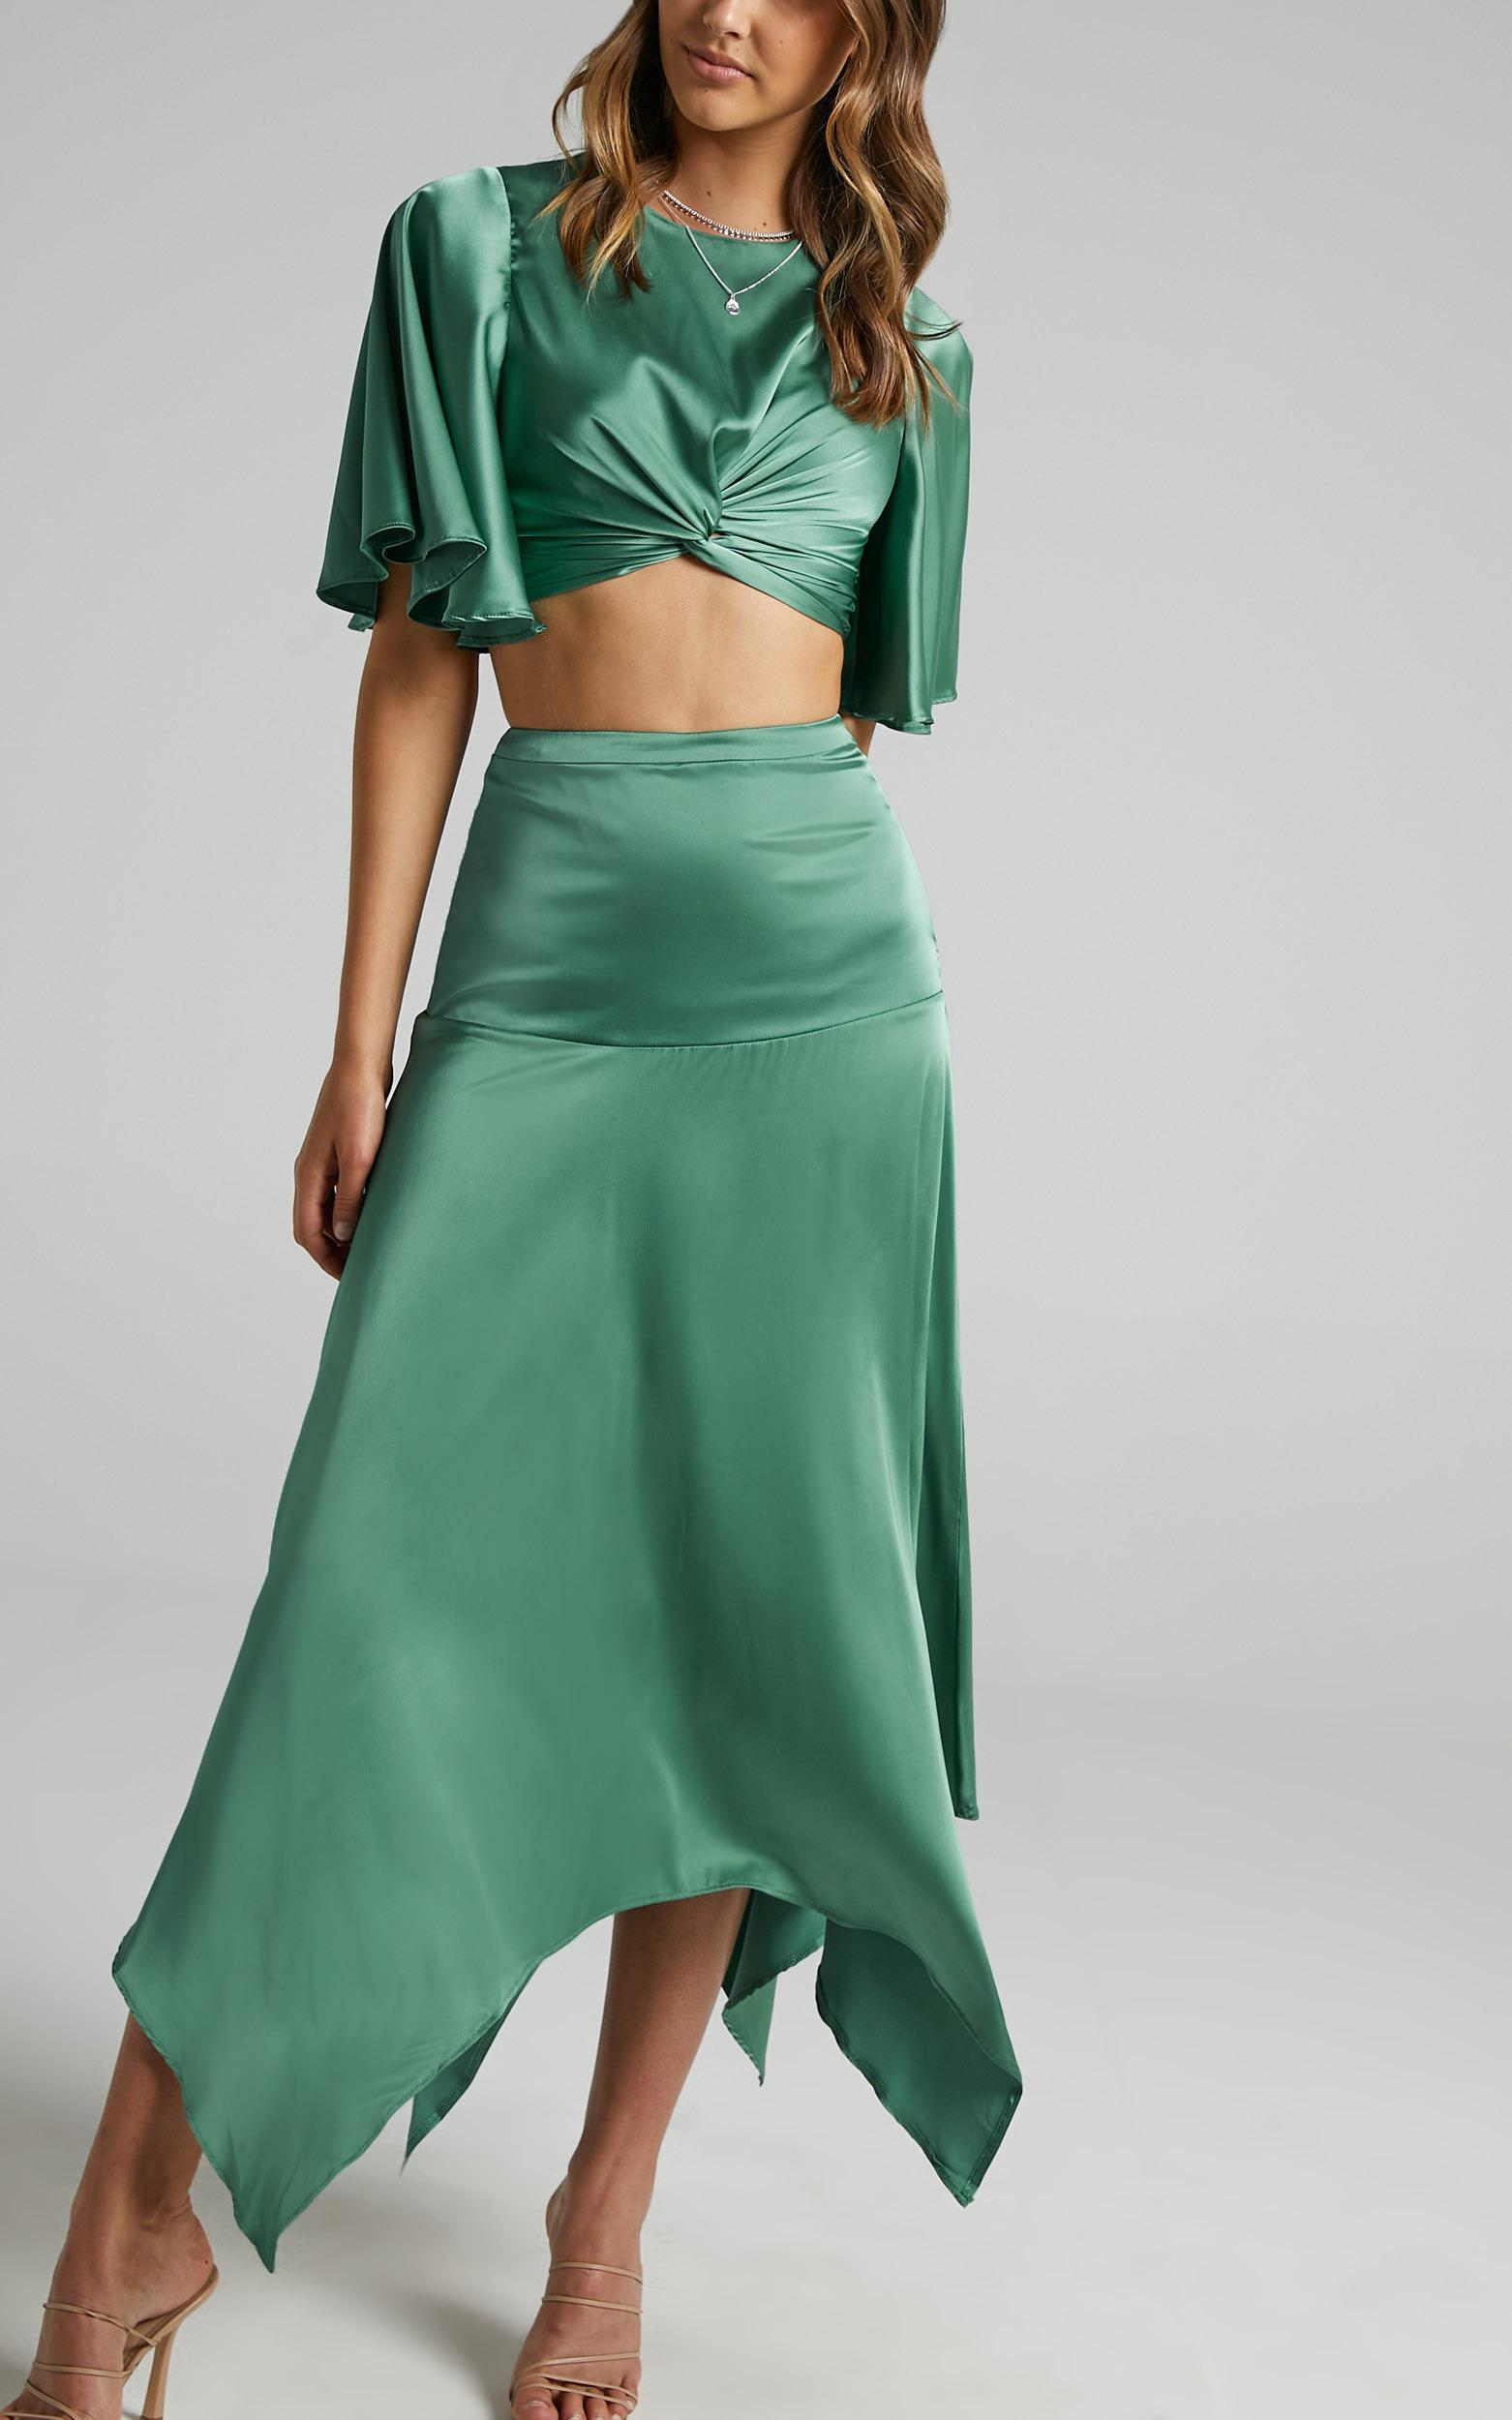 Chione Two Piece Set in Jade Satin - 06, GRN1, hi-res image number null